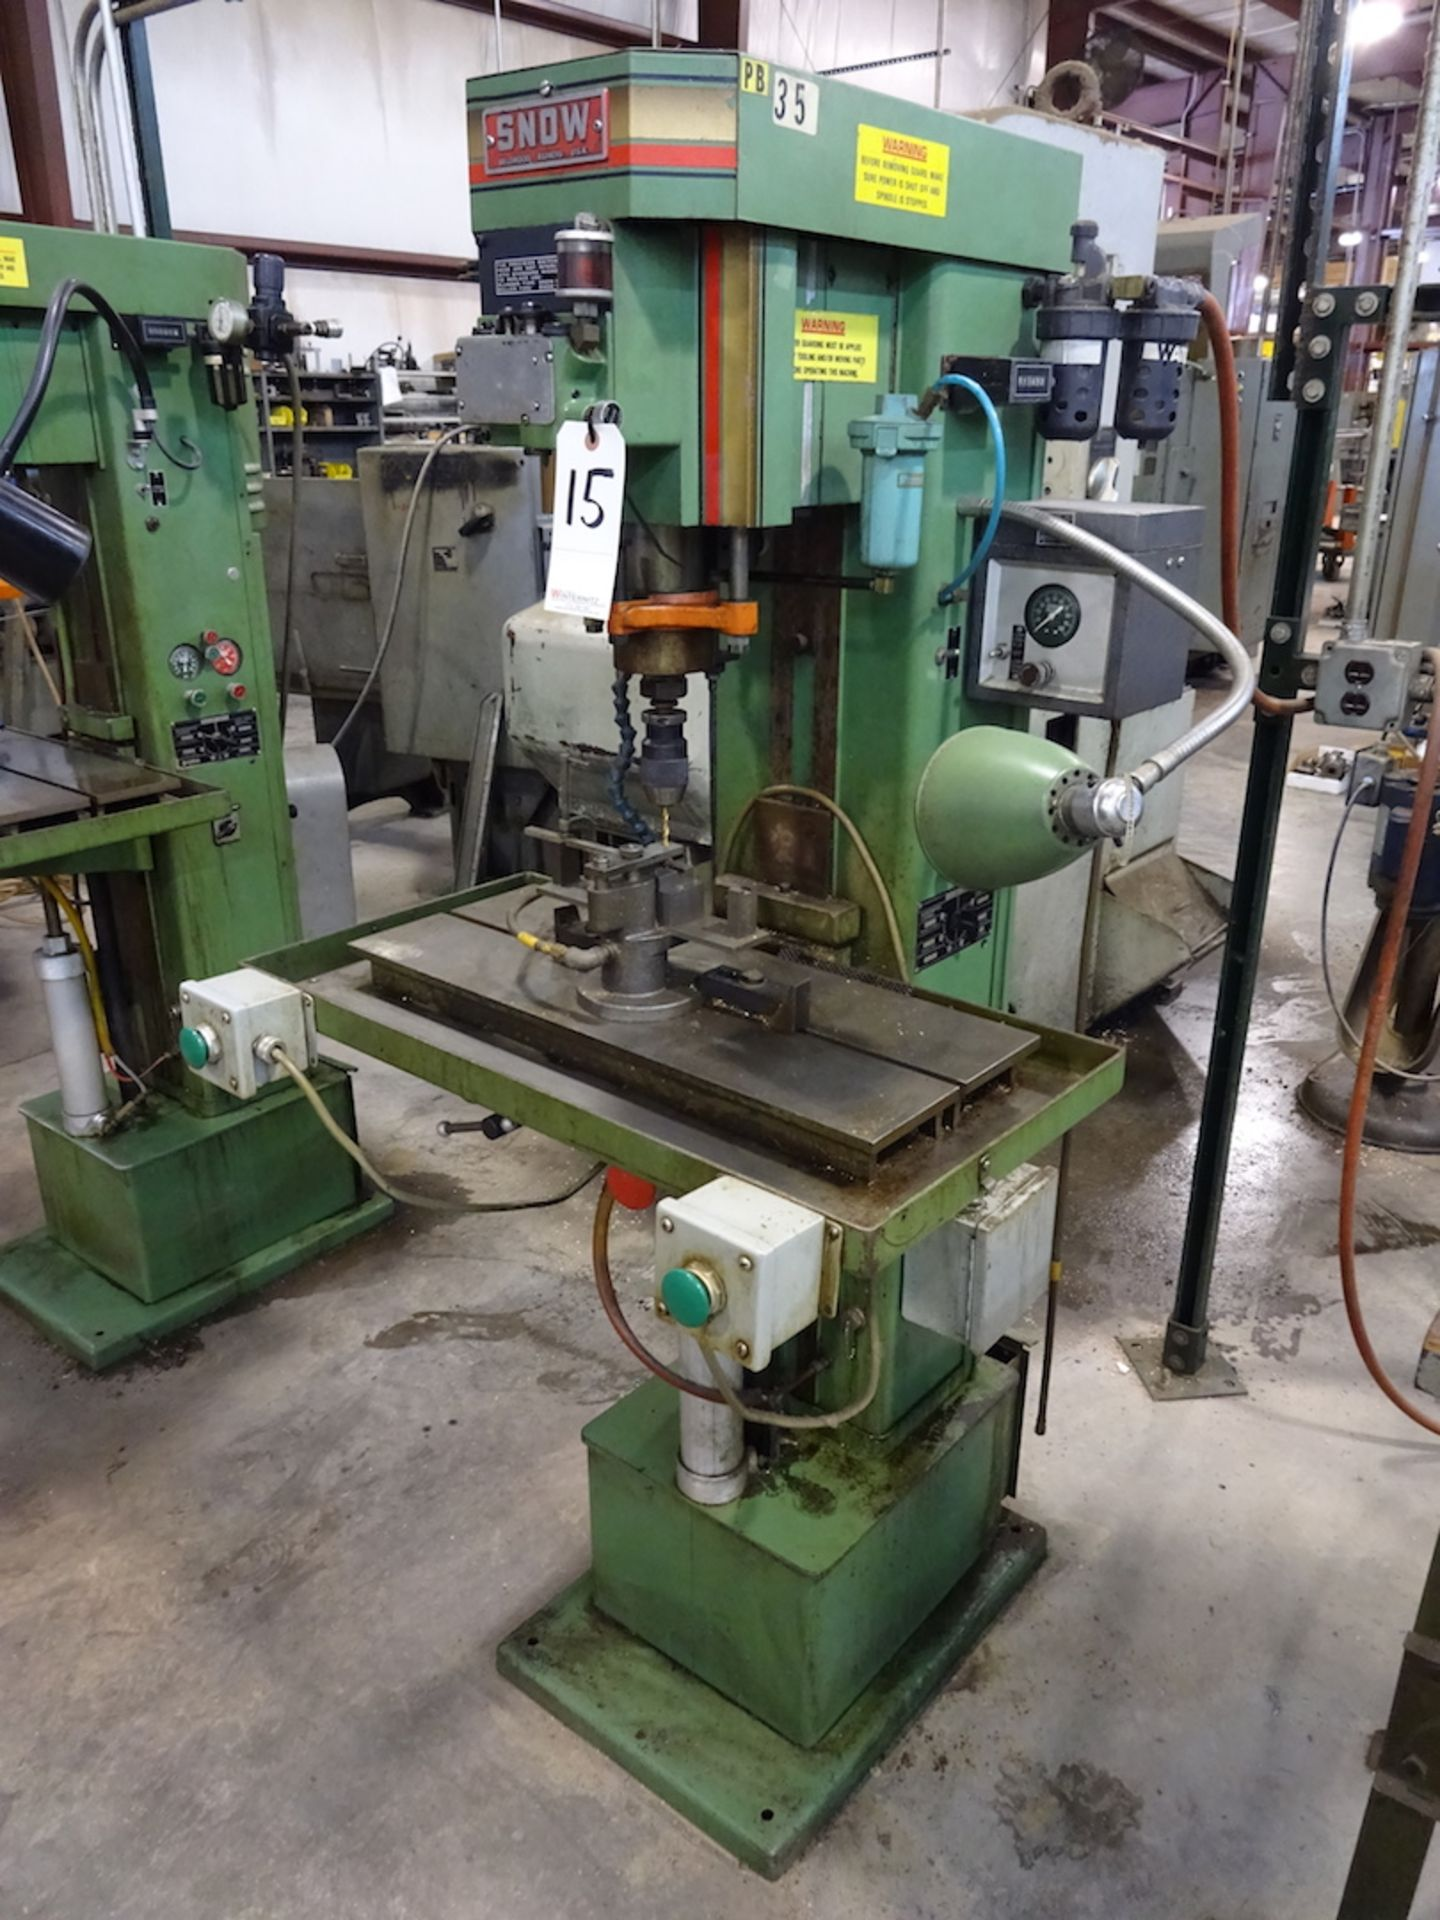 Lot 15 - Snow Model DR2-R Tapping Machine, S/N M42270-387, 1/2 HP, 635-3450 RPM